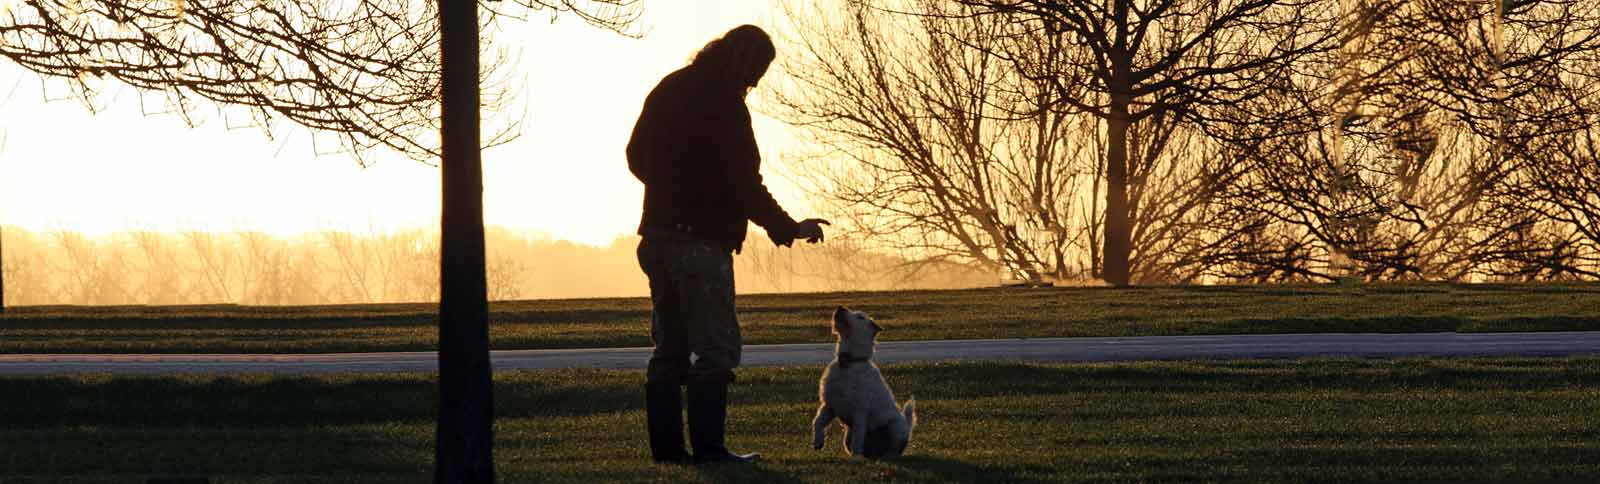 Man training a dog to sit at a park around sunrise.